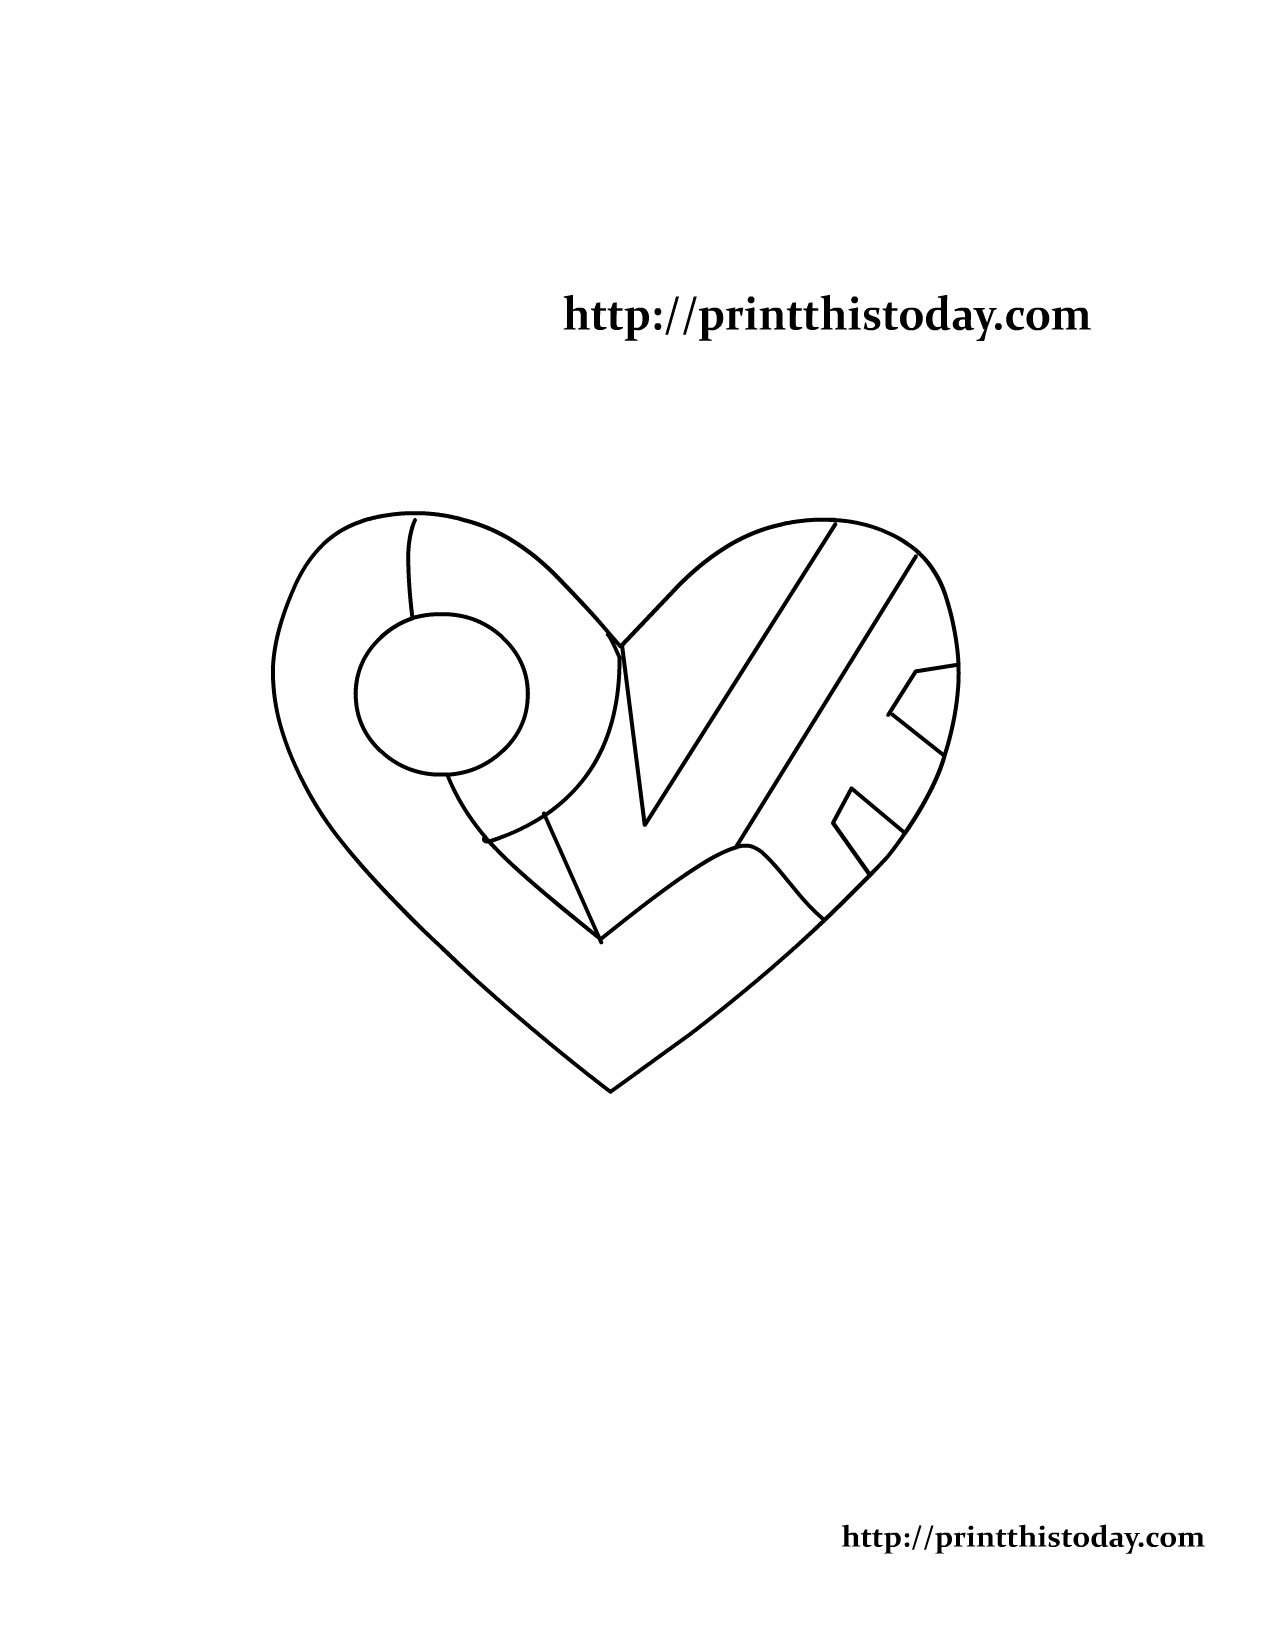 on this cute free printable love themed coloring page the word love